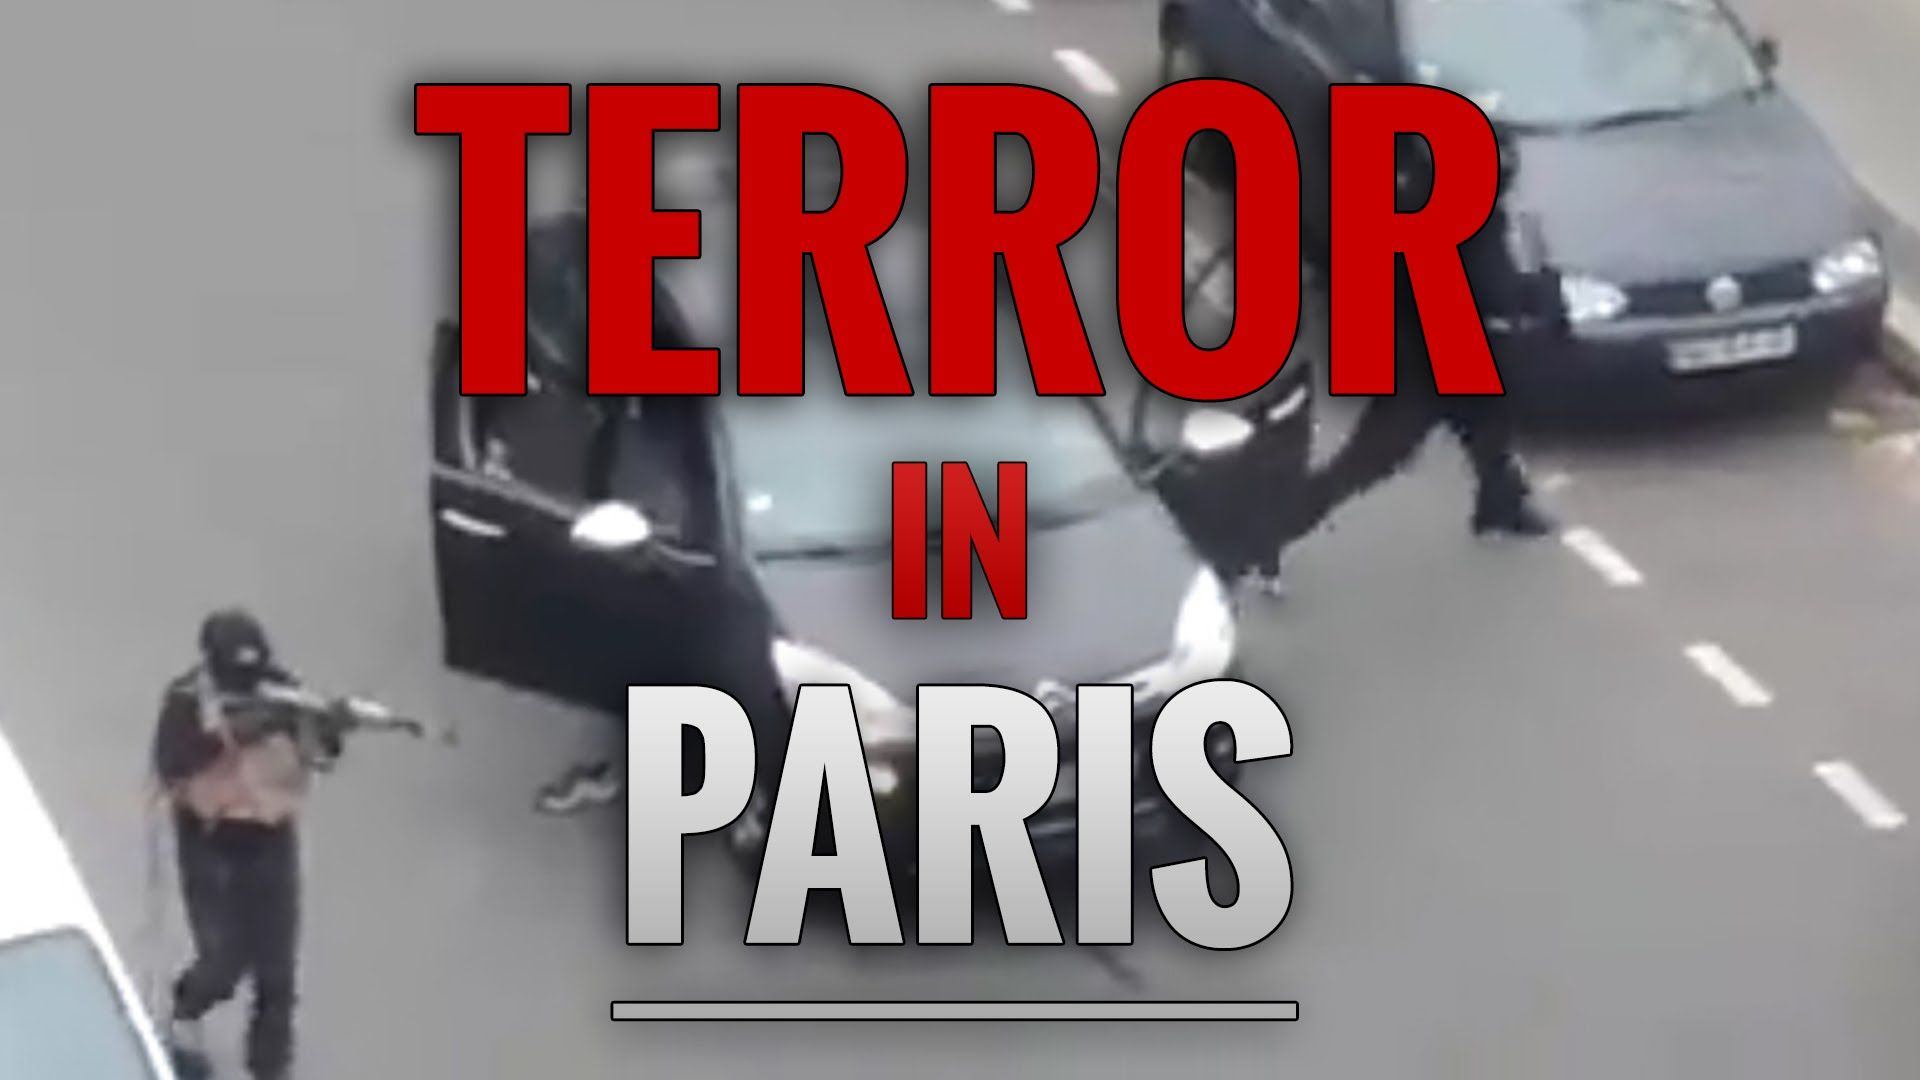 SHOCK! Terror in Paris Proves Violence Can't be Stopped